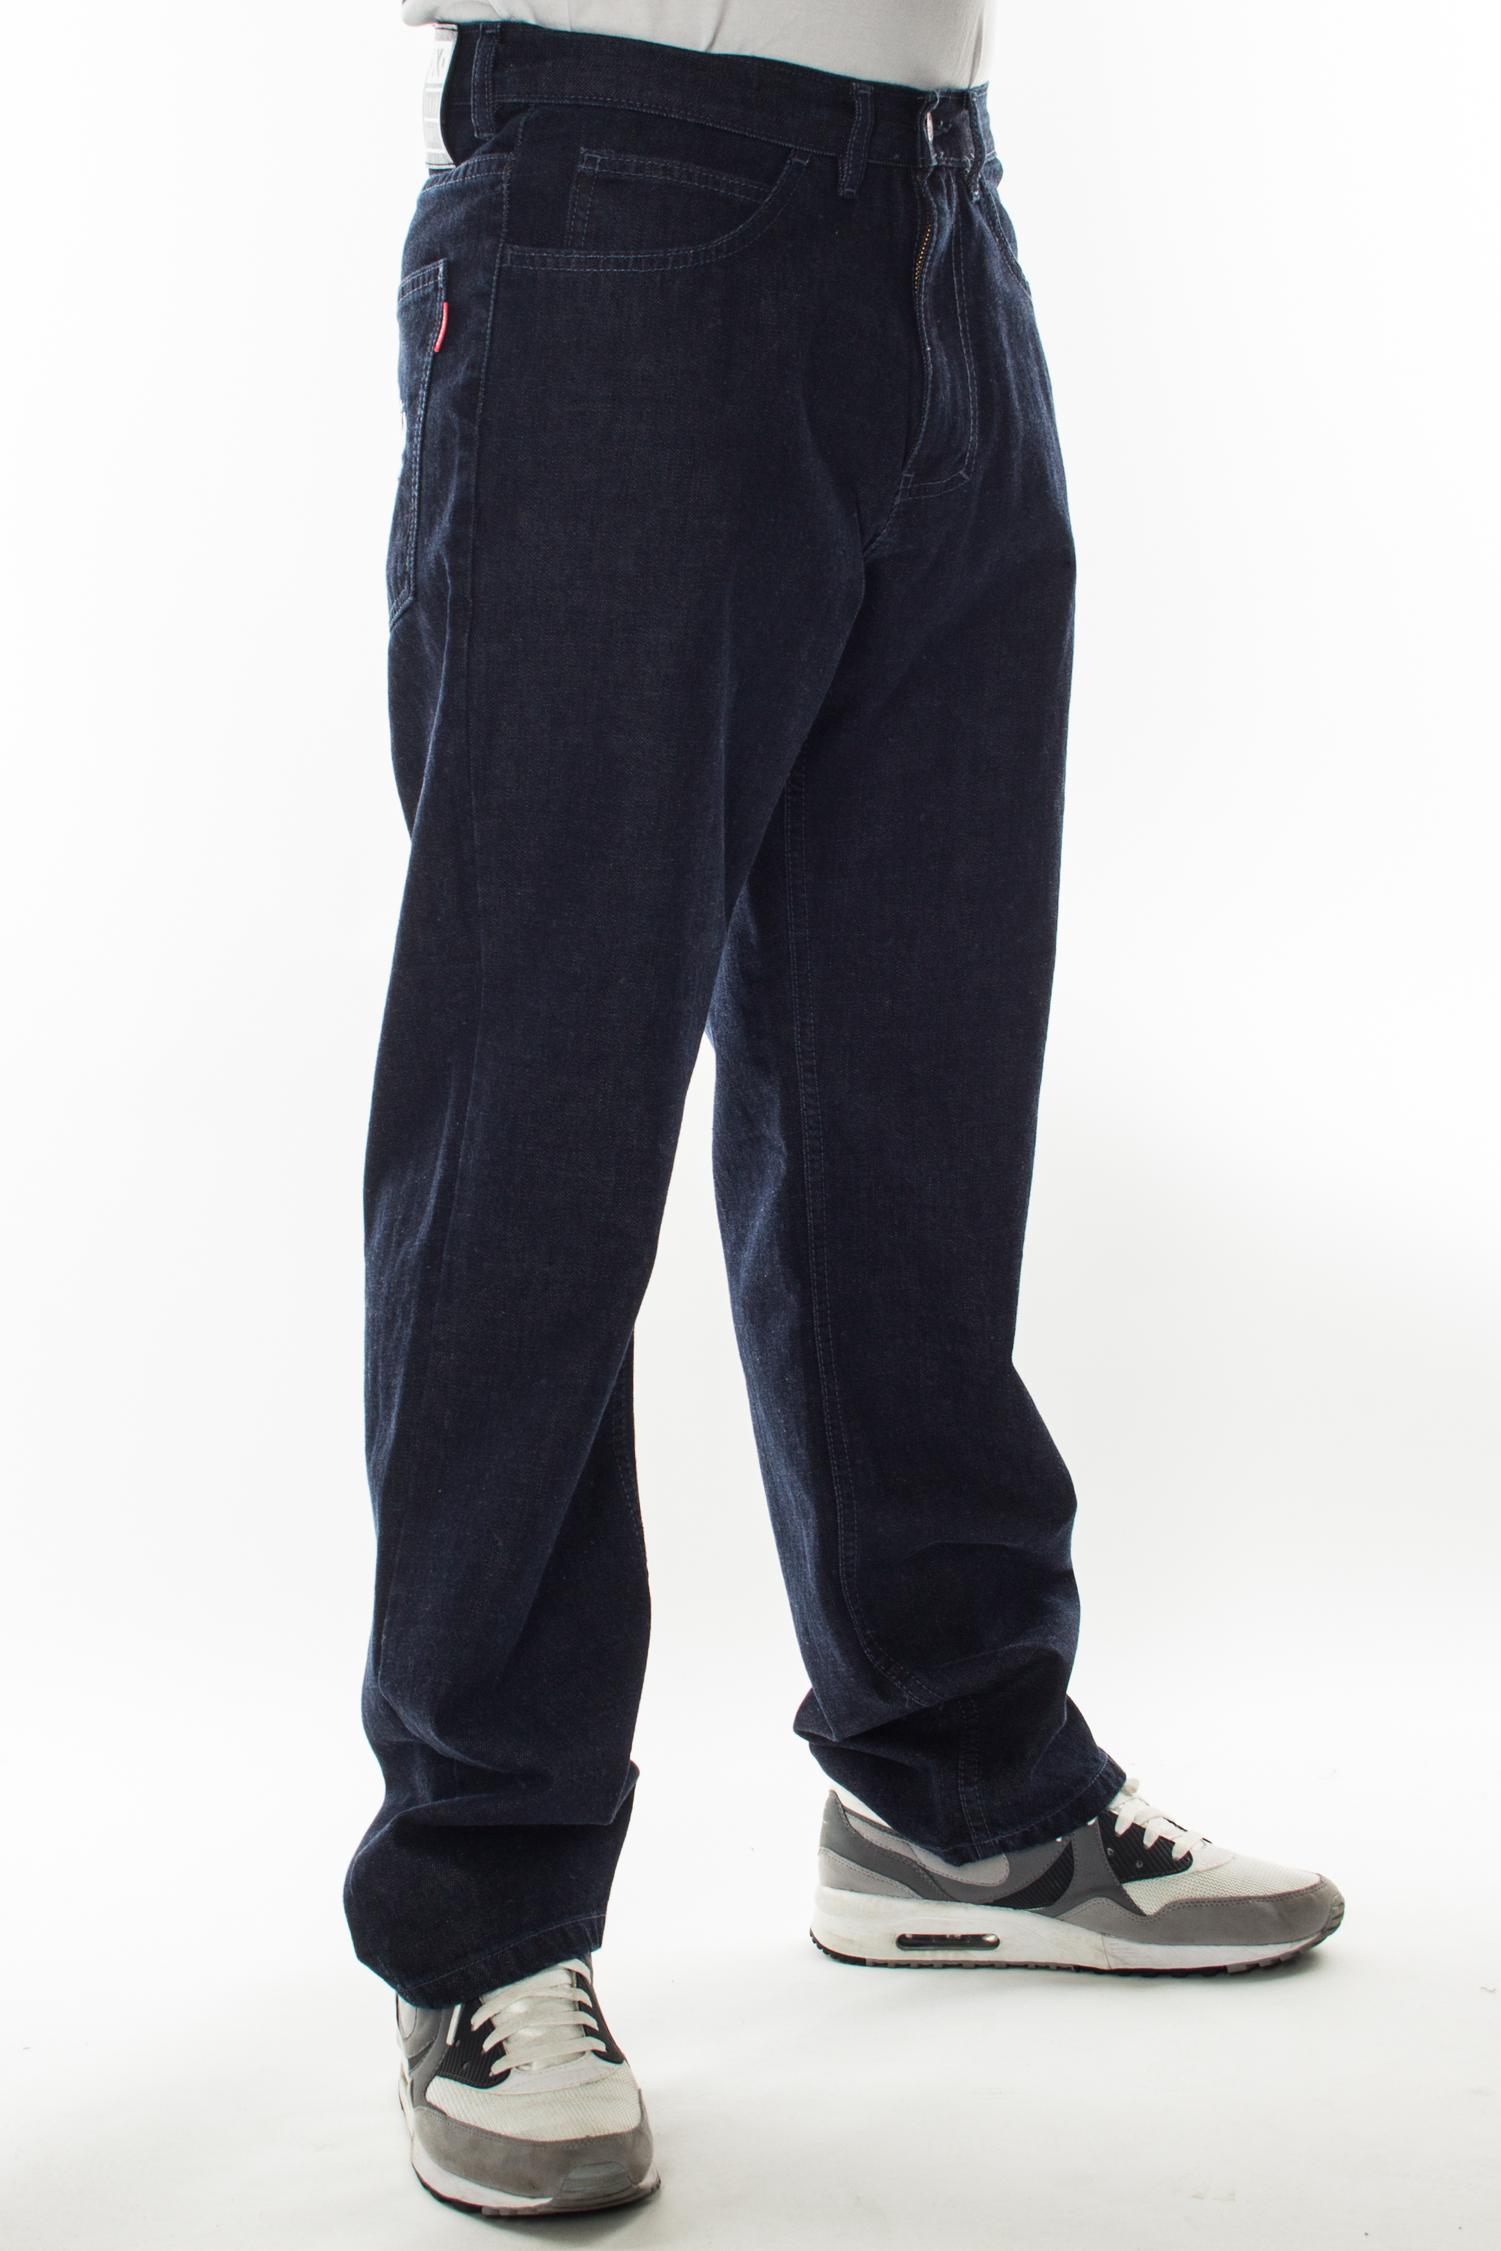 EL POLAKO JEANSY REGULAR STYLE NAVY